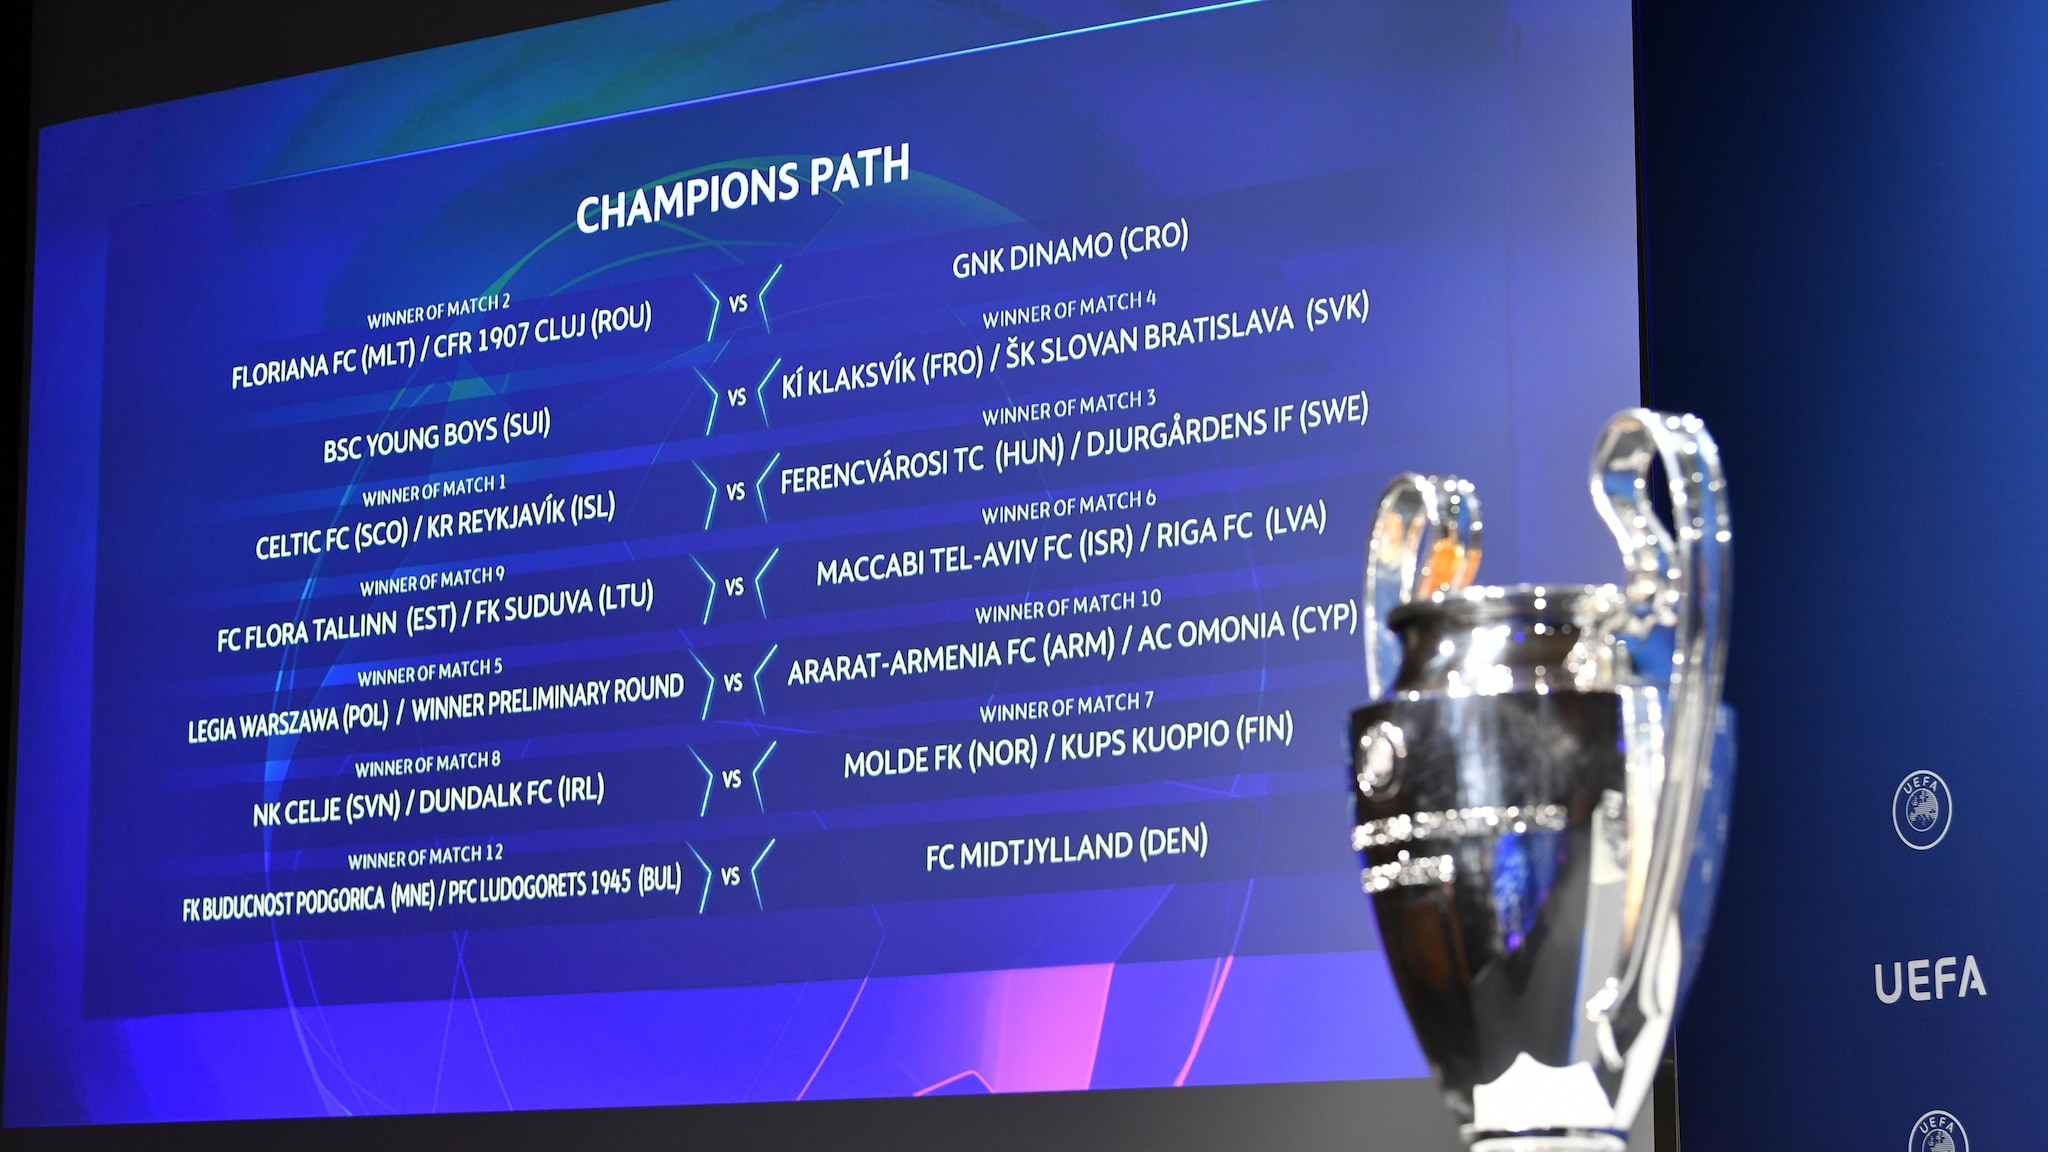 9+ Champions League Schedule